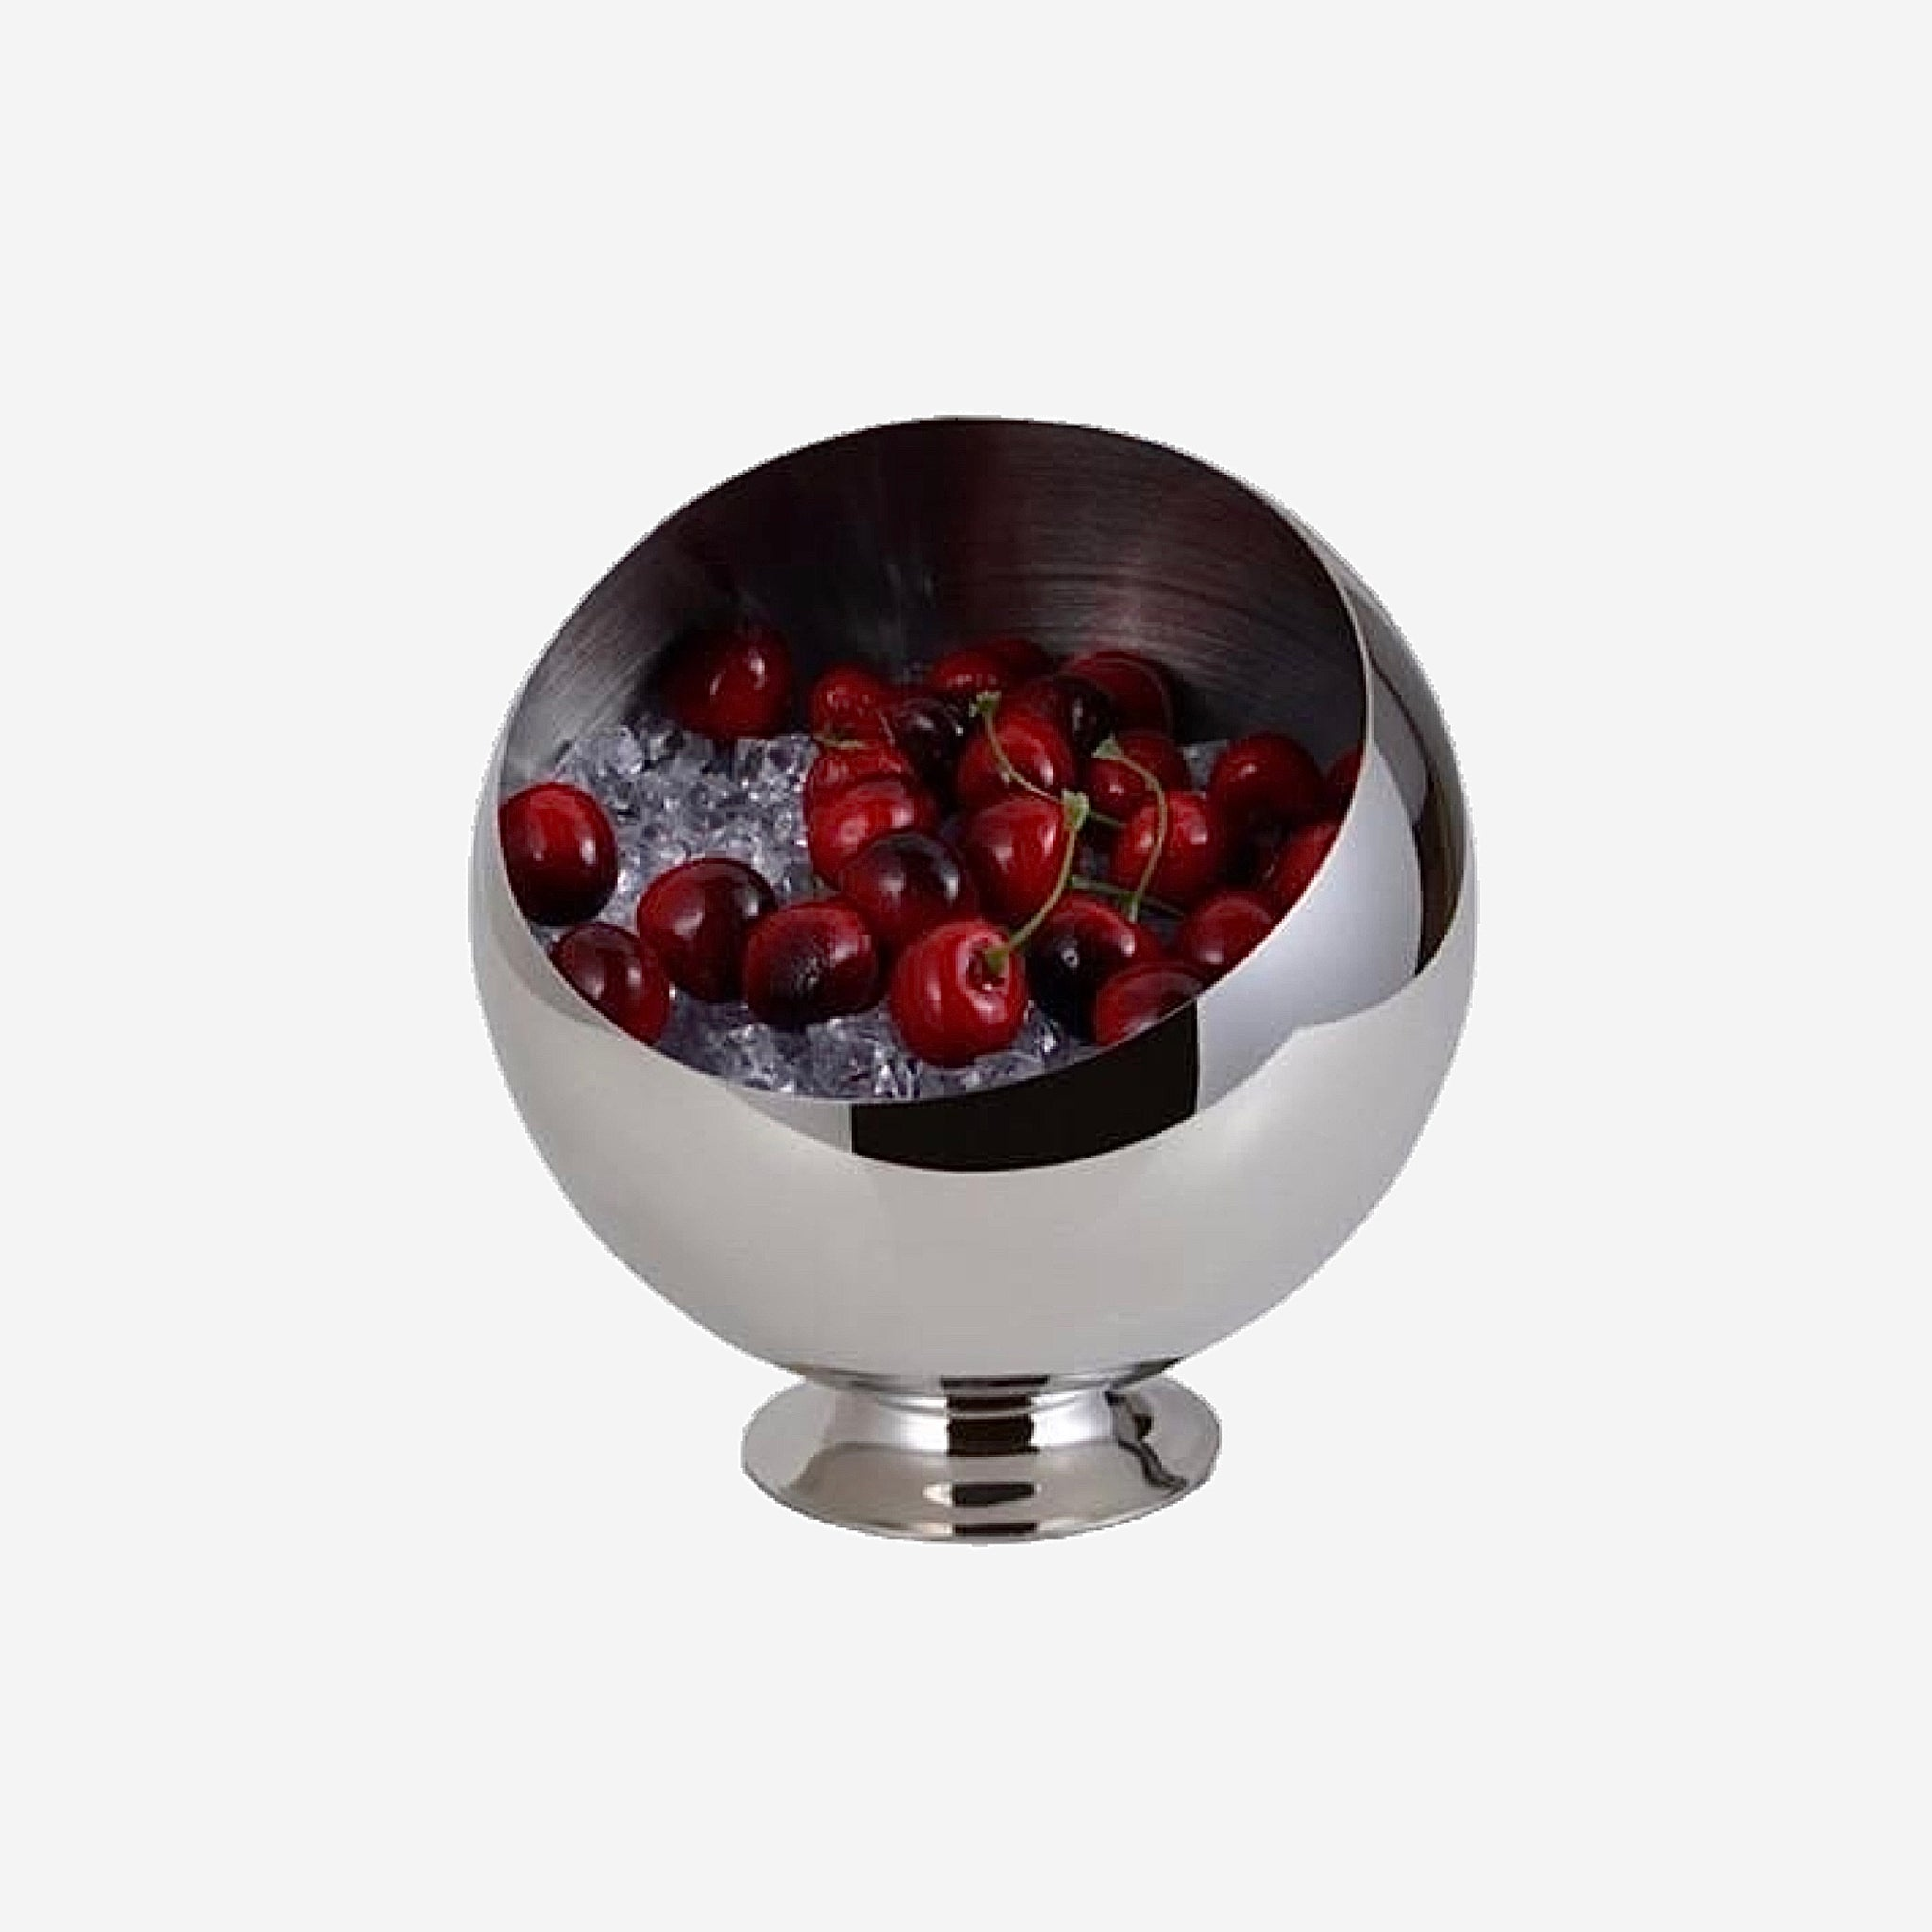 Stainless Steel Oblique Mouth Fruit Bowl